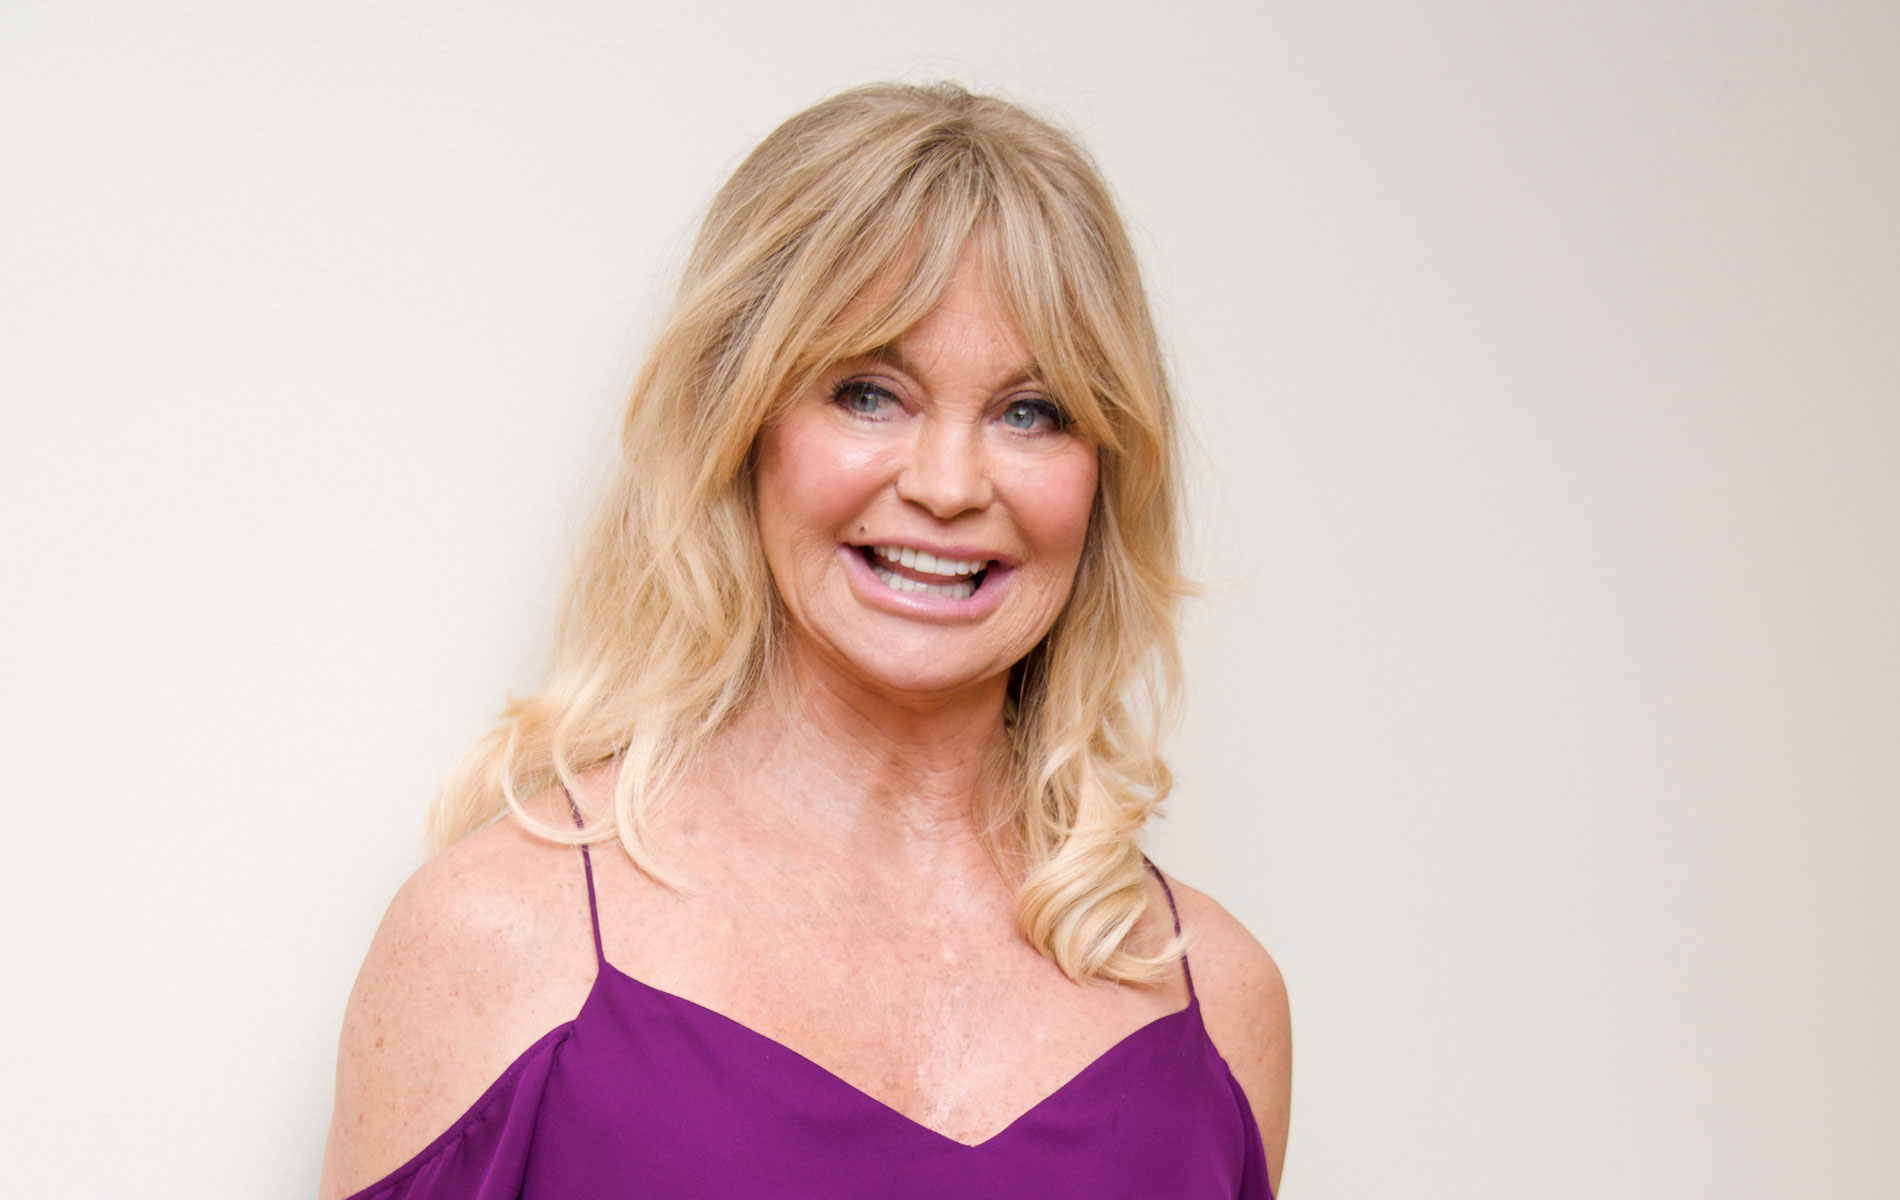 Golden Girl: Goldie Hawn Goes From Ditzy To Seriously